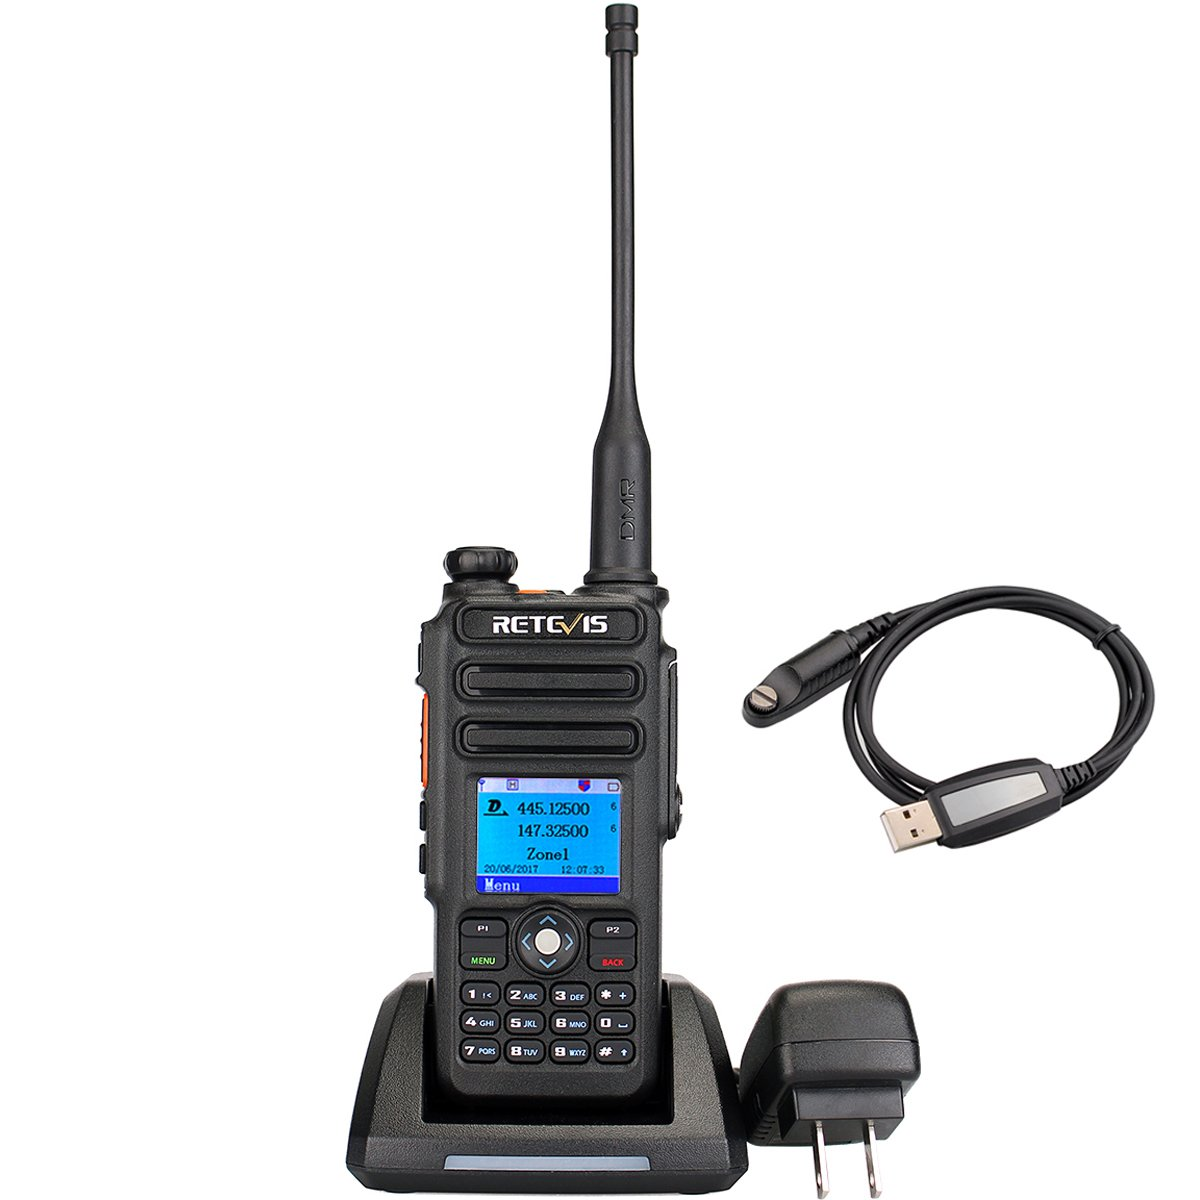 Retevis RT82 Dual Band DMR Digital 2 Way Radio 5W 136-174MHZ/400-480MHZ 3000 Channels 10000 Contacts List Waterproof GPS Ham Amateur Radio with Record Function and Programming Cable by Retevis